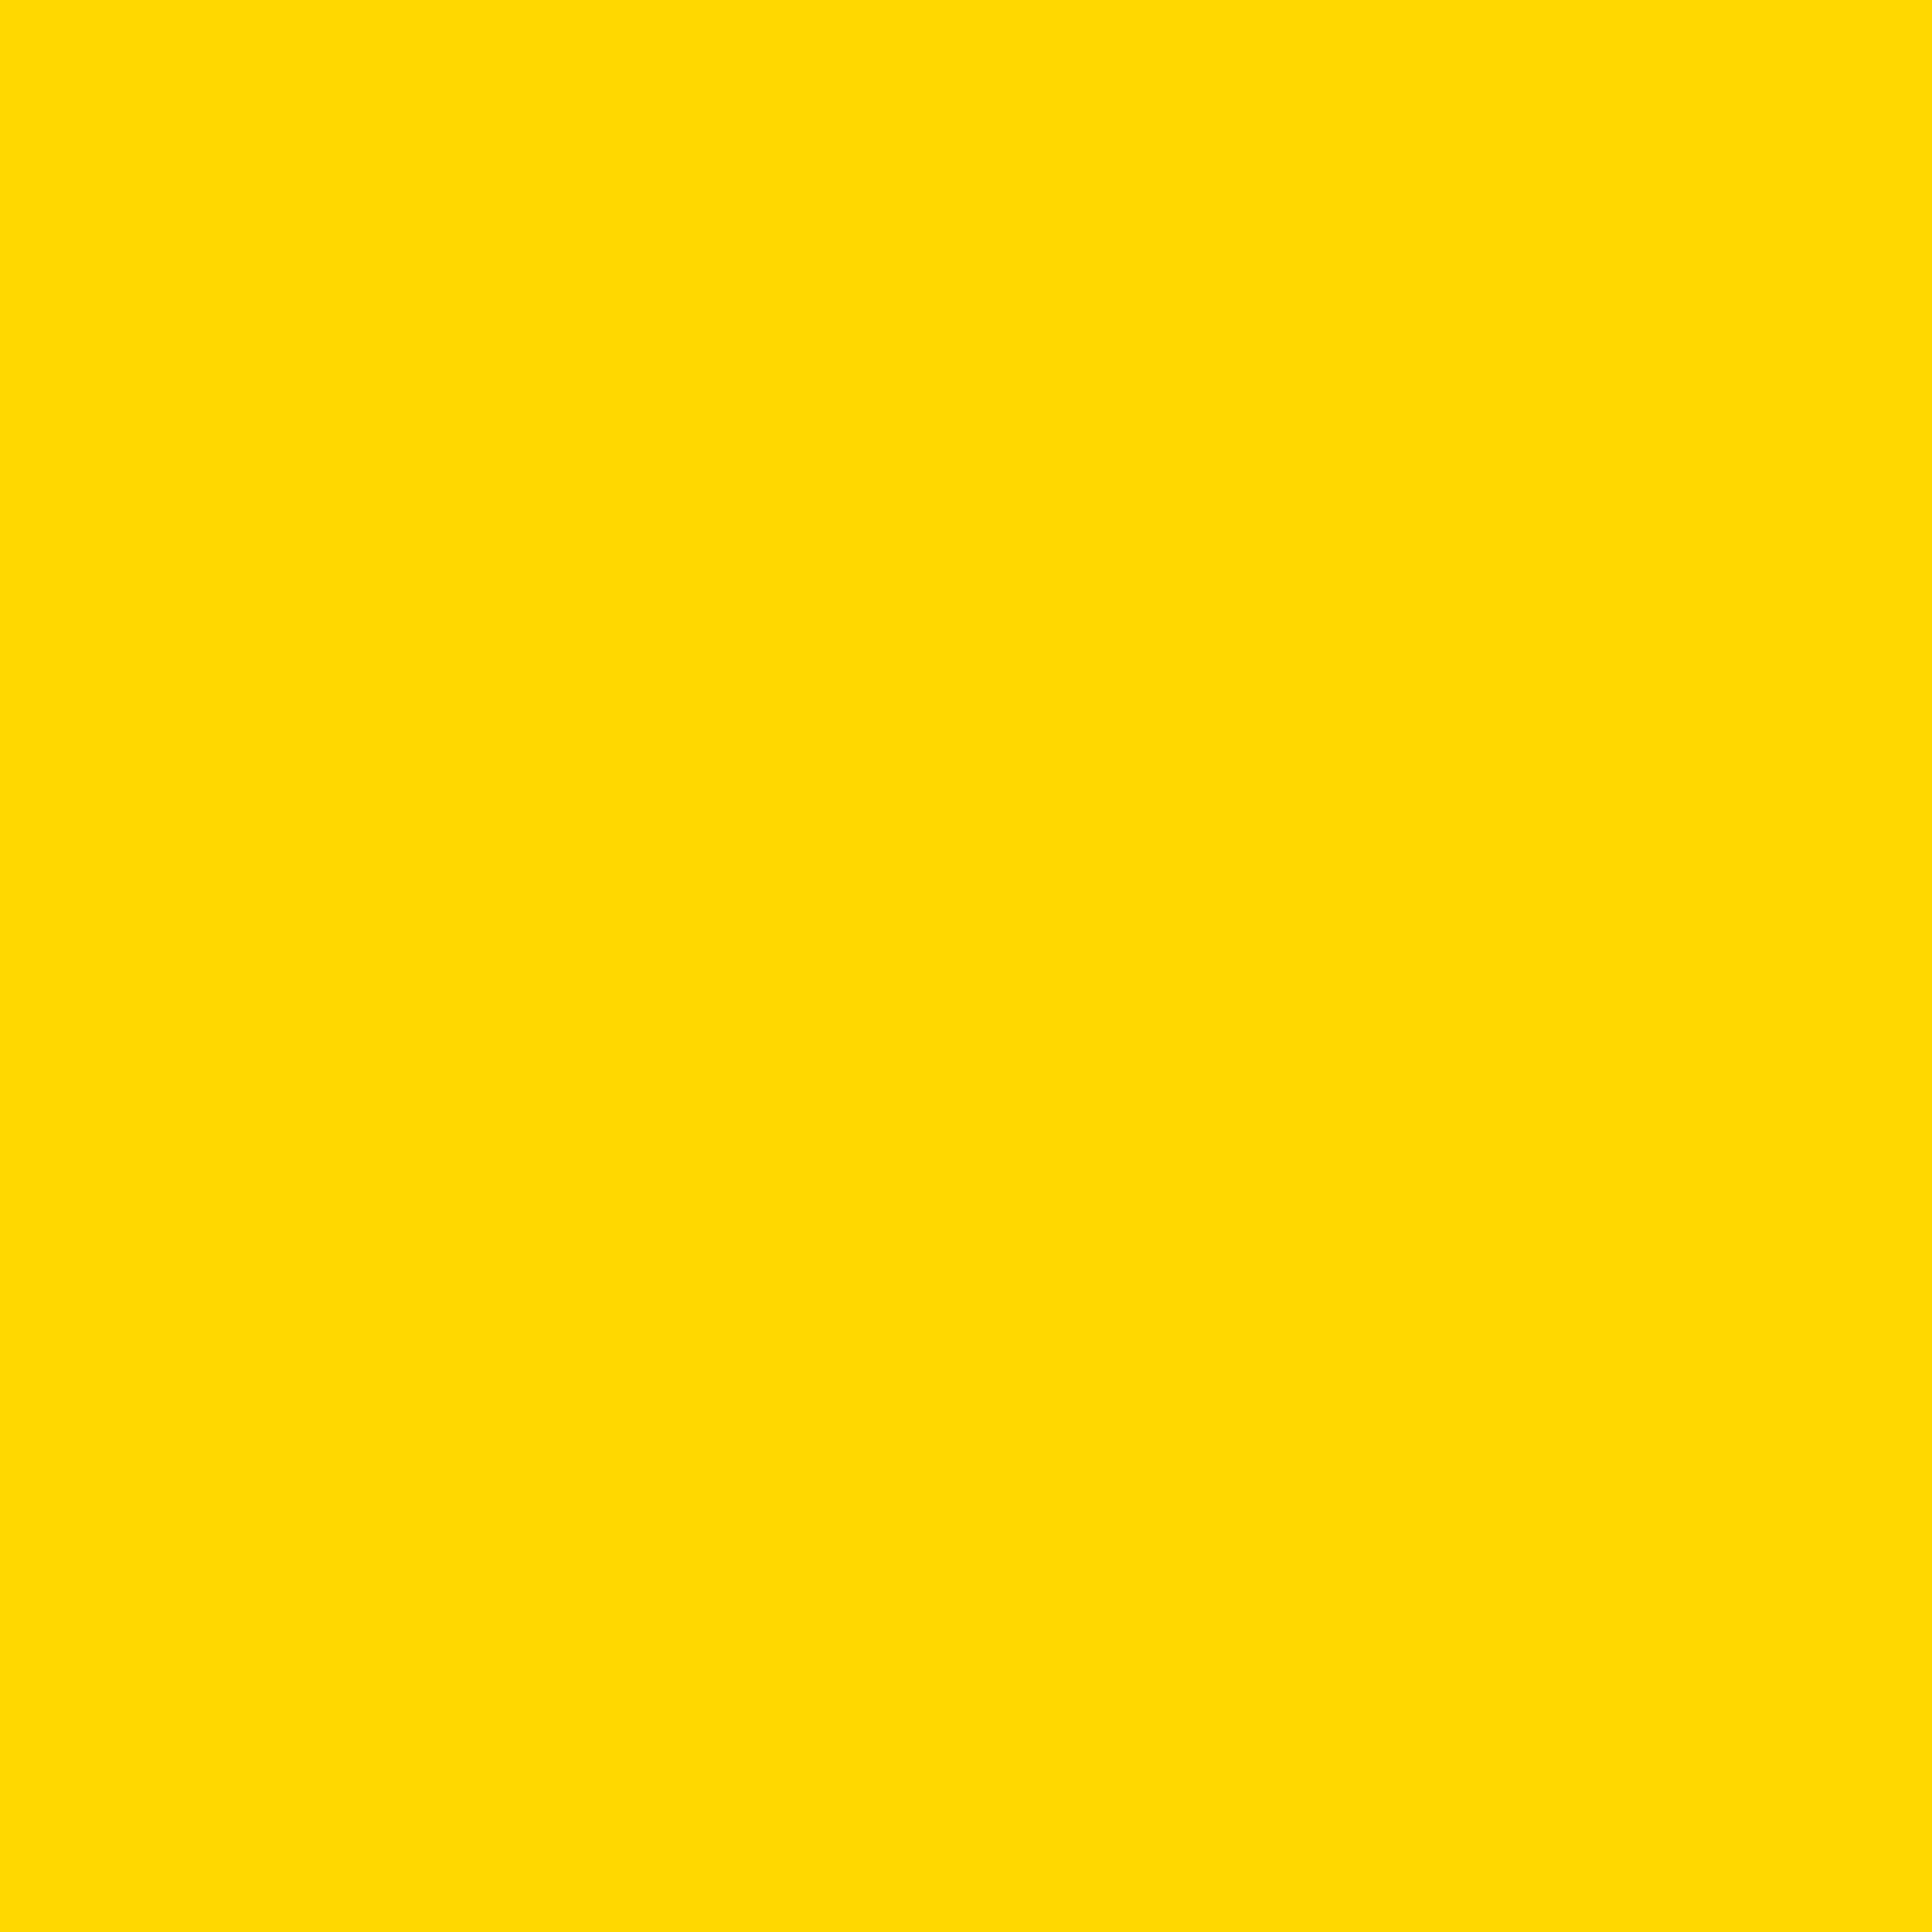 3600x3600 School Bus Yellow Solid Color Background